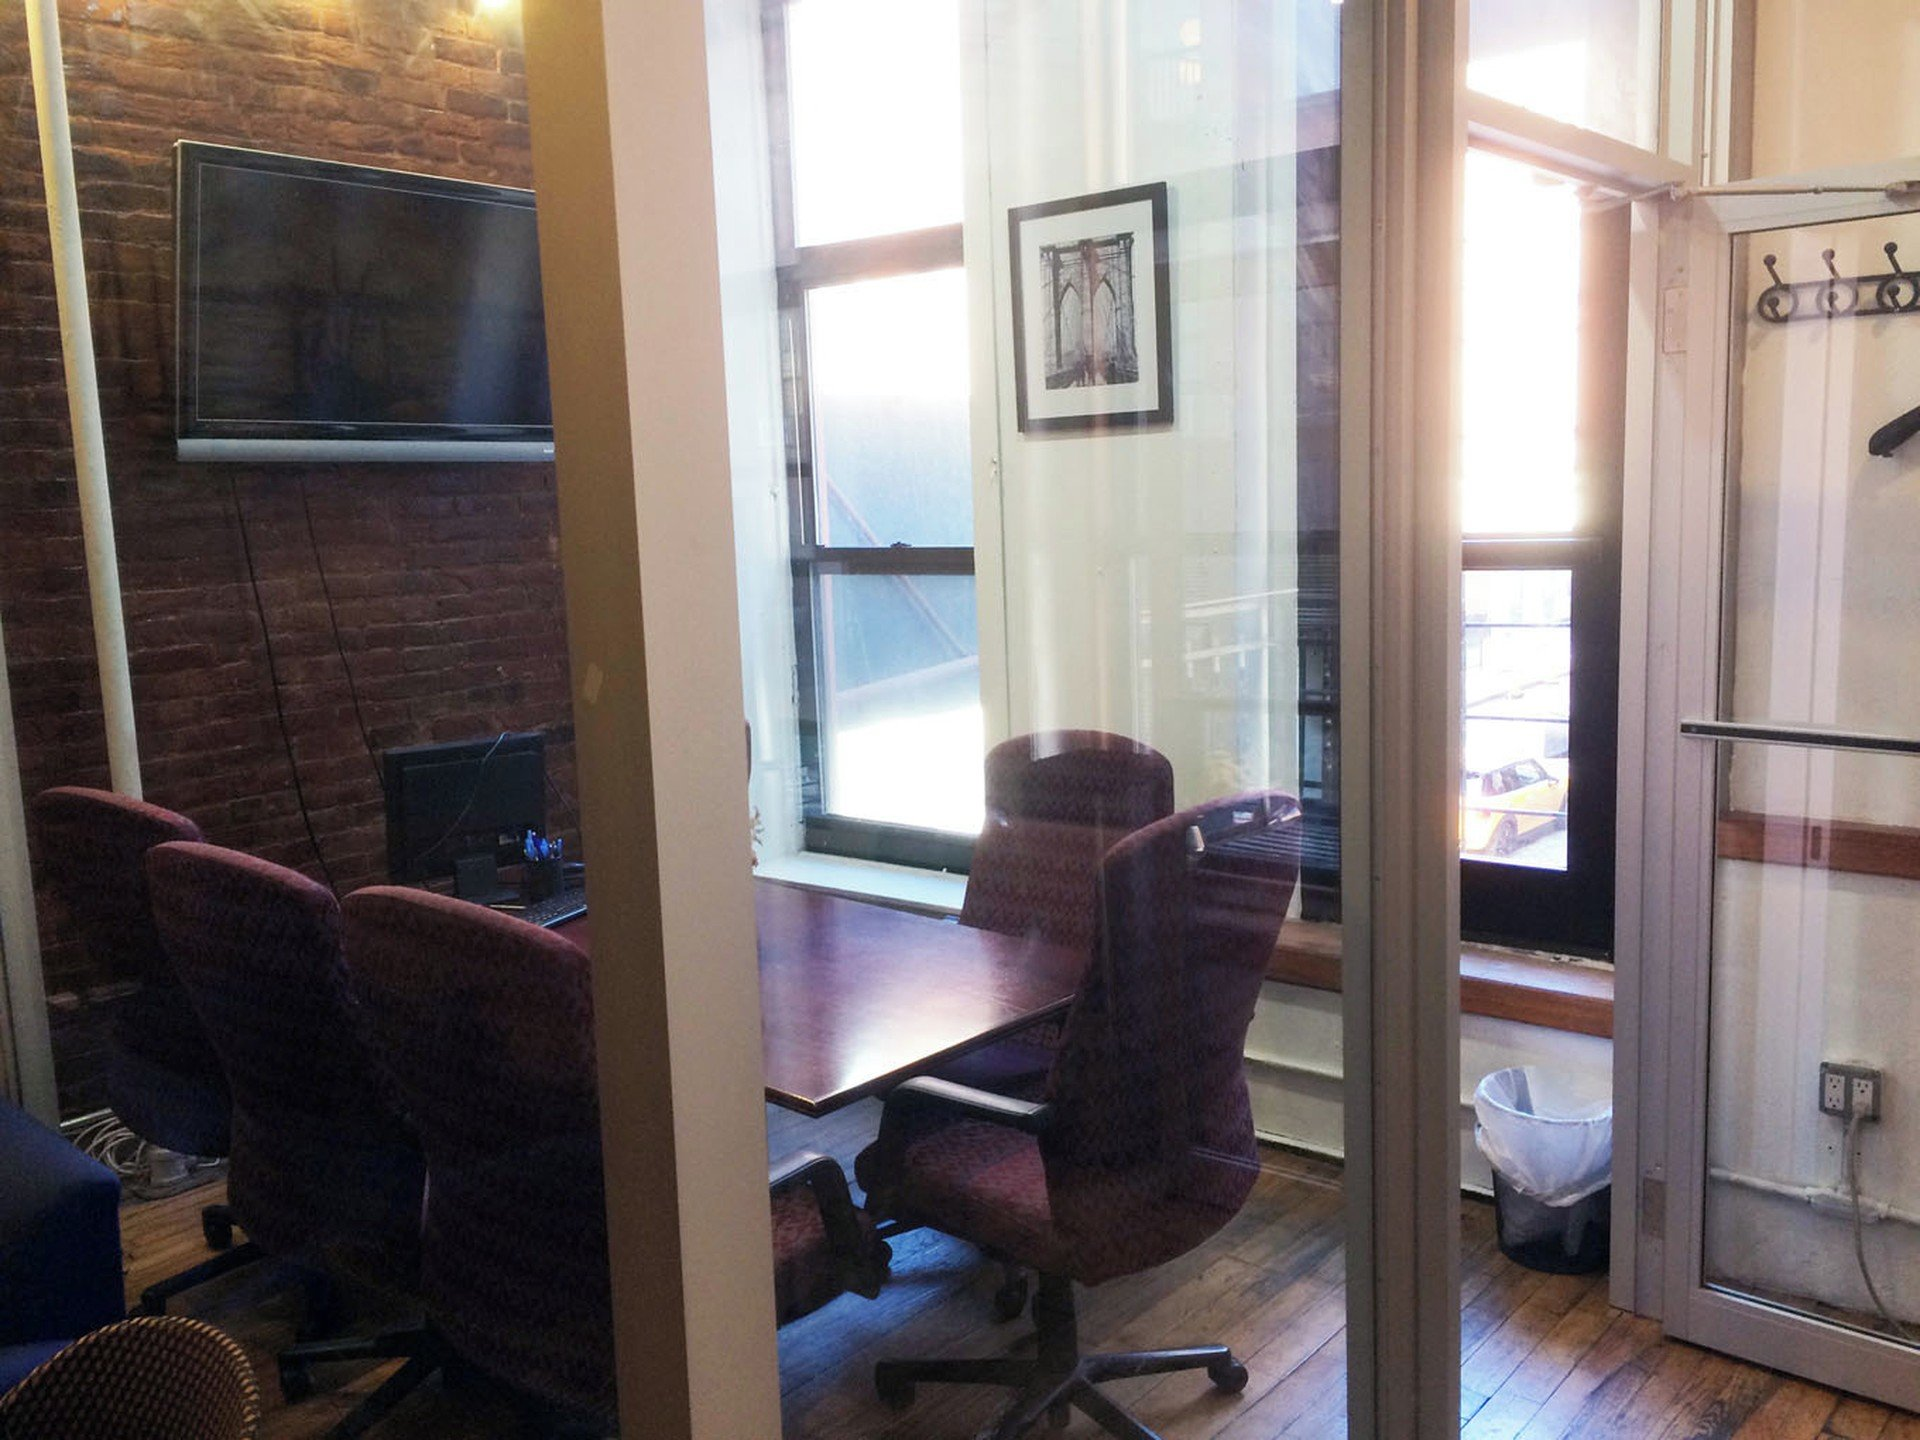 NYC  Coworking Space SoHo Office image 4